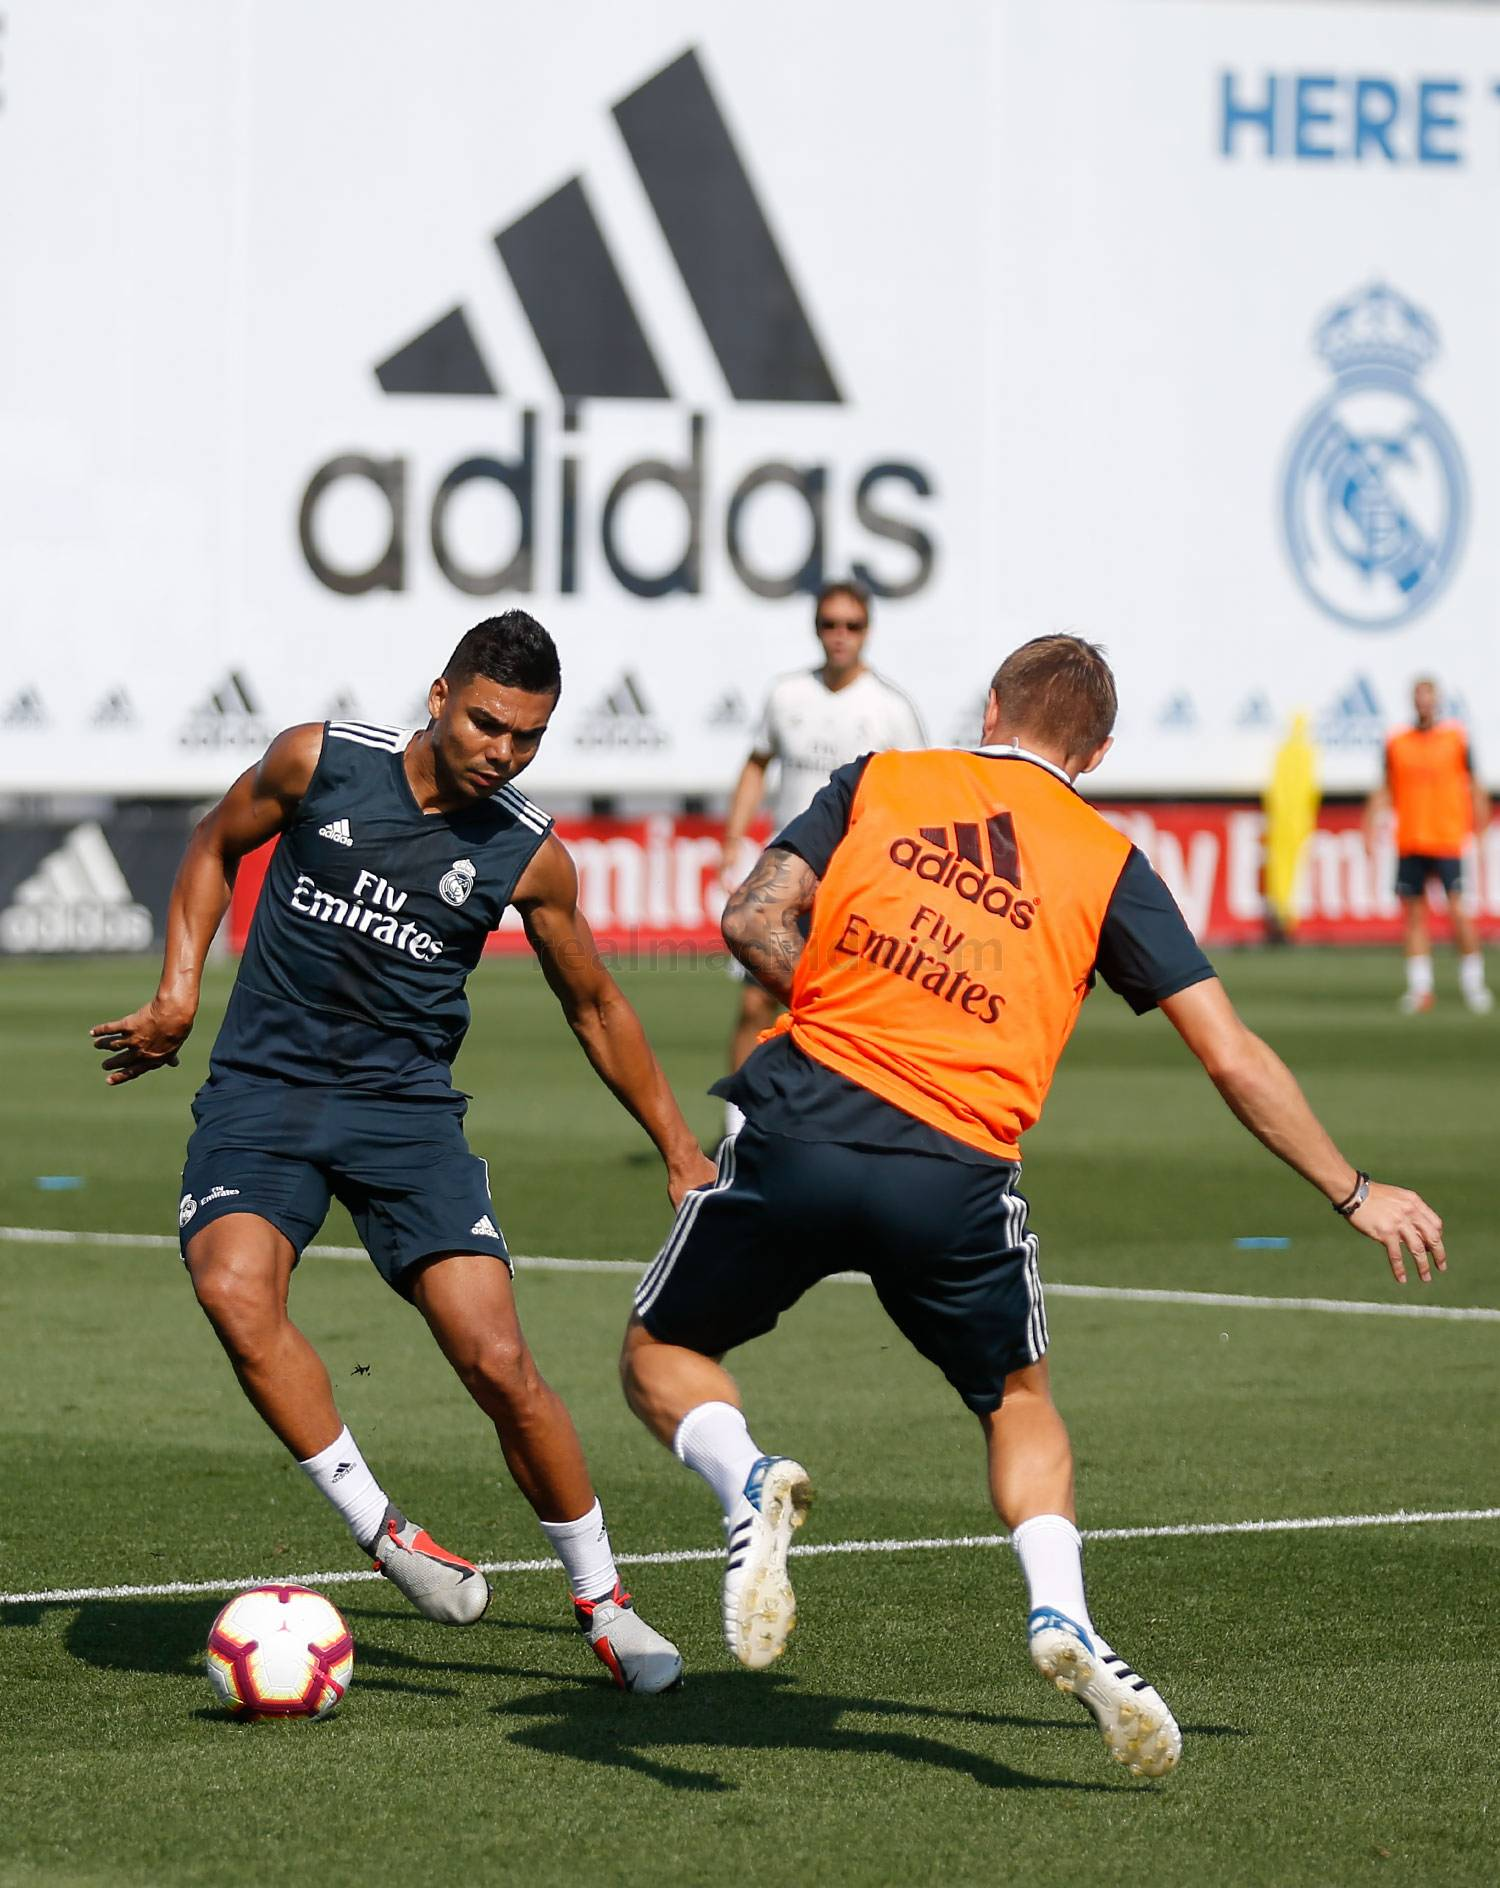 Real Madrid - Entrenamiento del Real Madrid - 30-08-2018